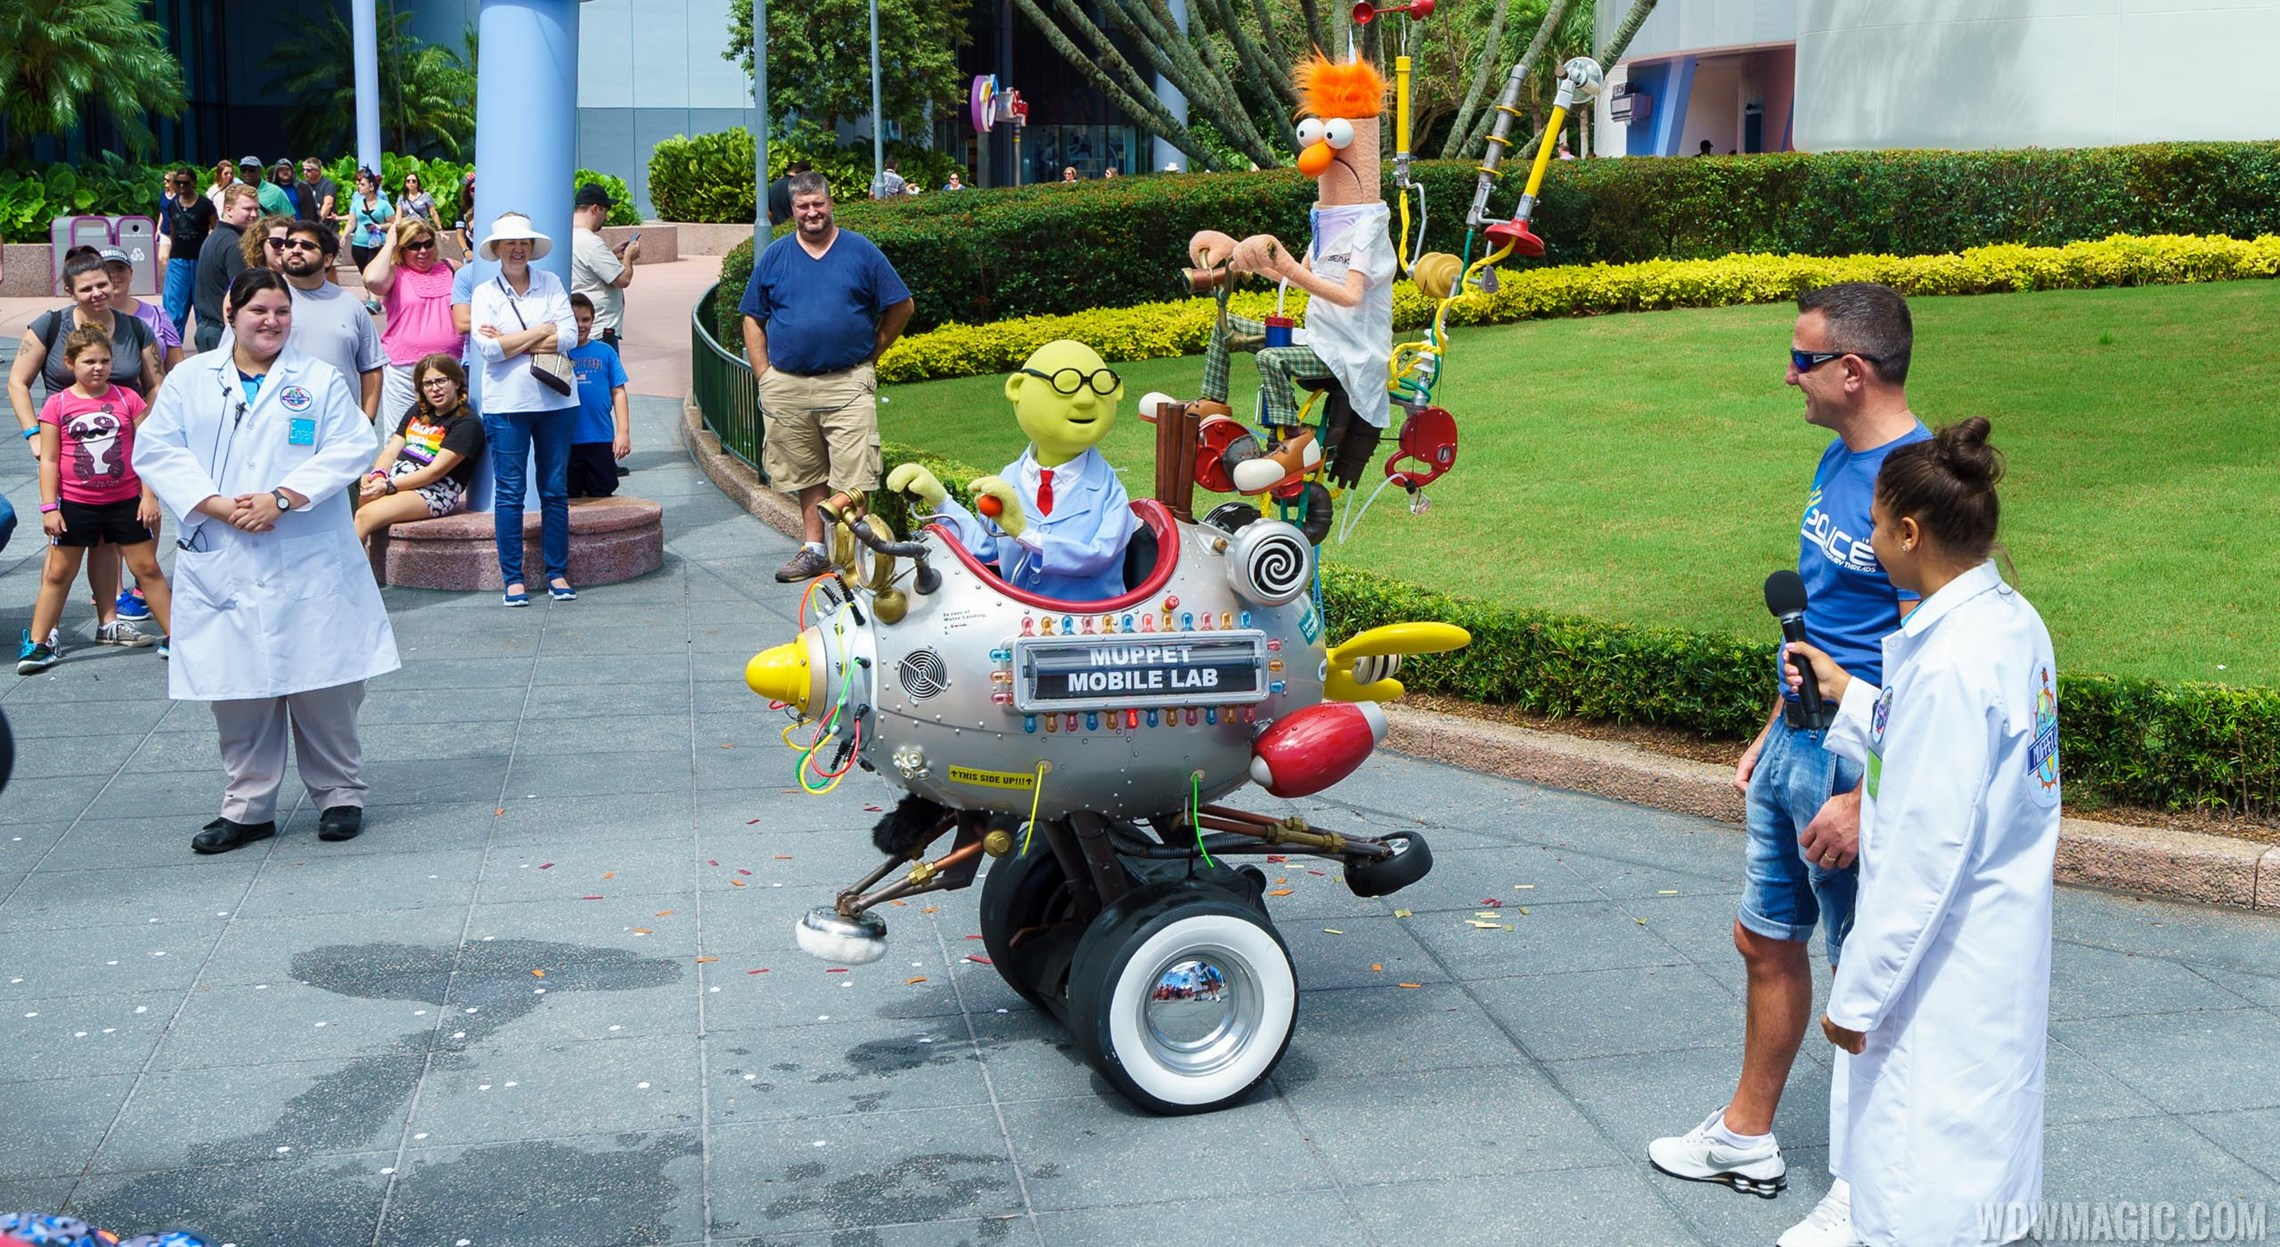 Muppet Mobile Lab back at Epcot